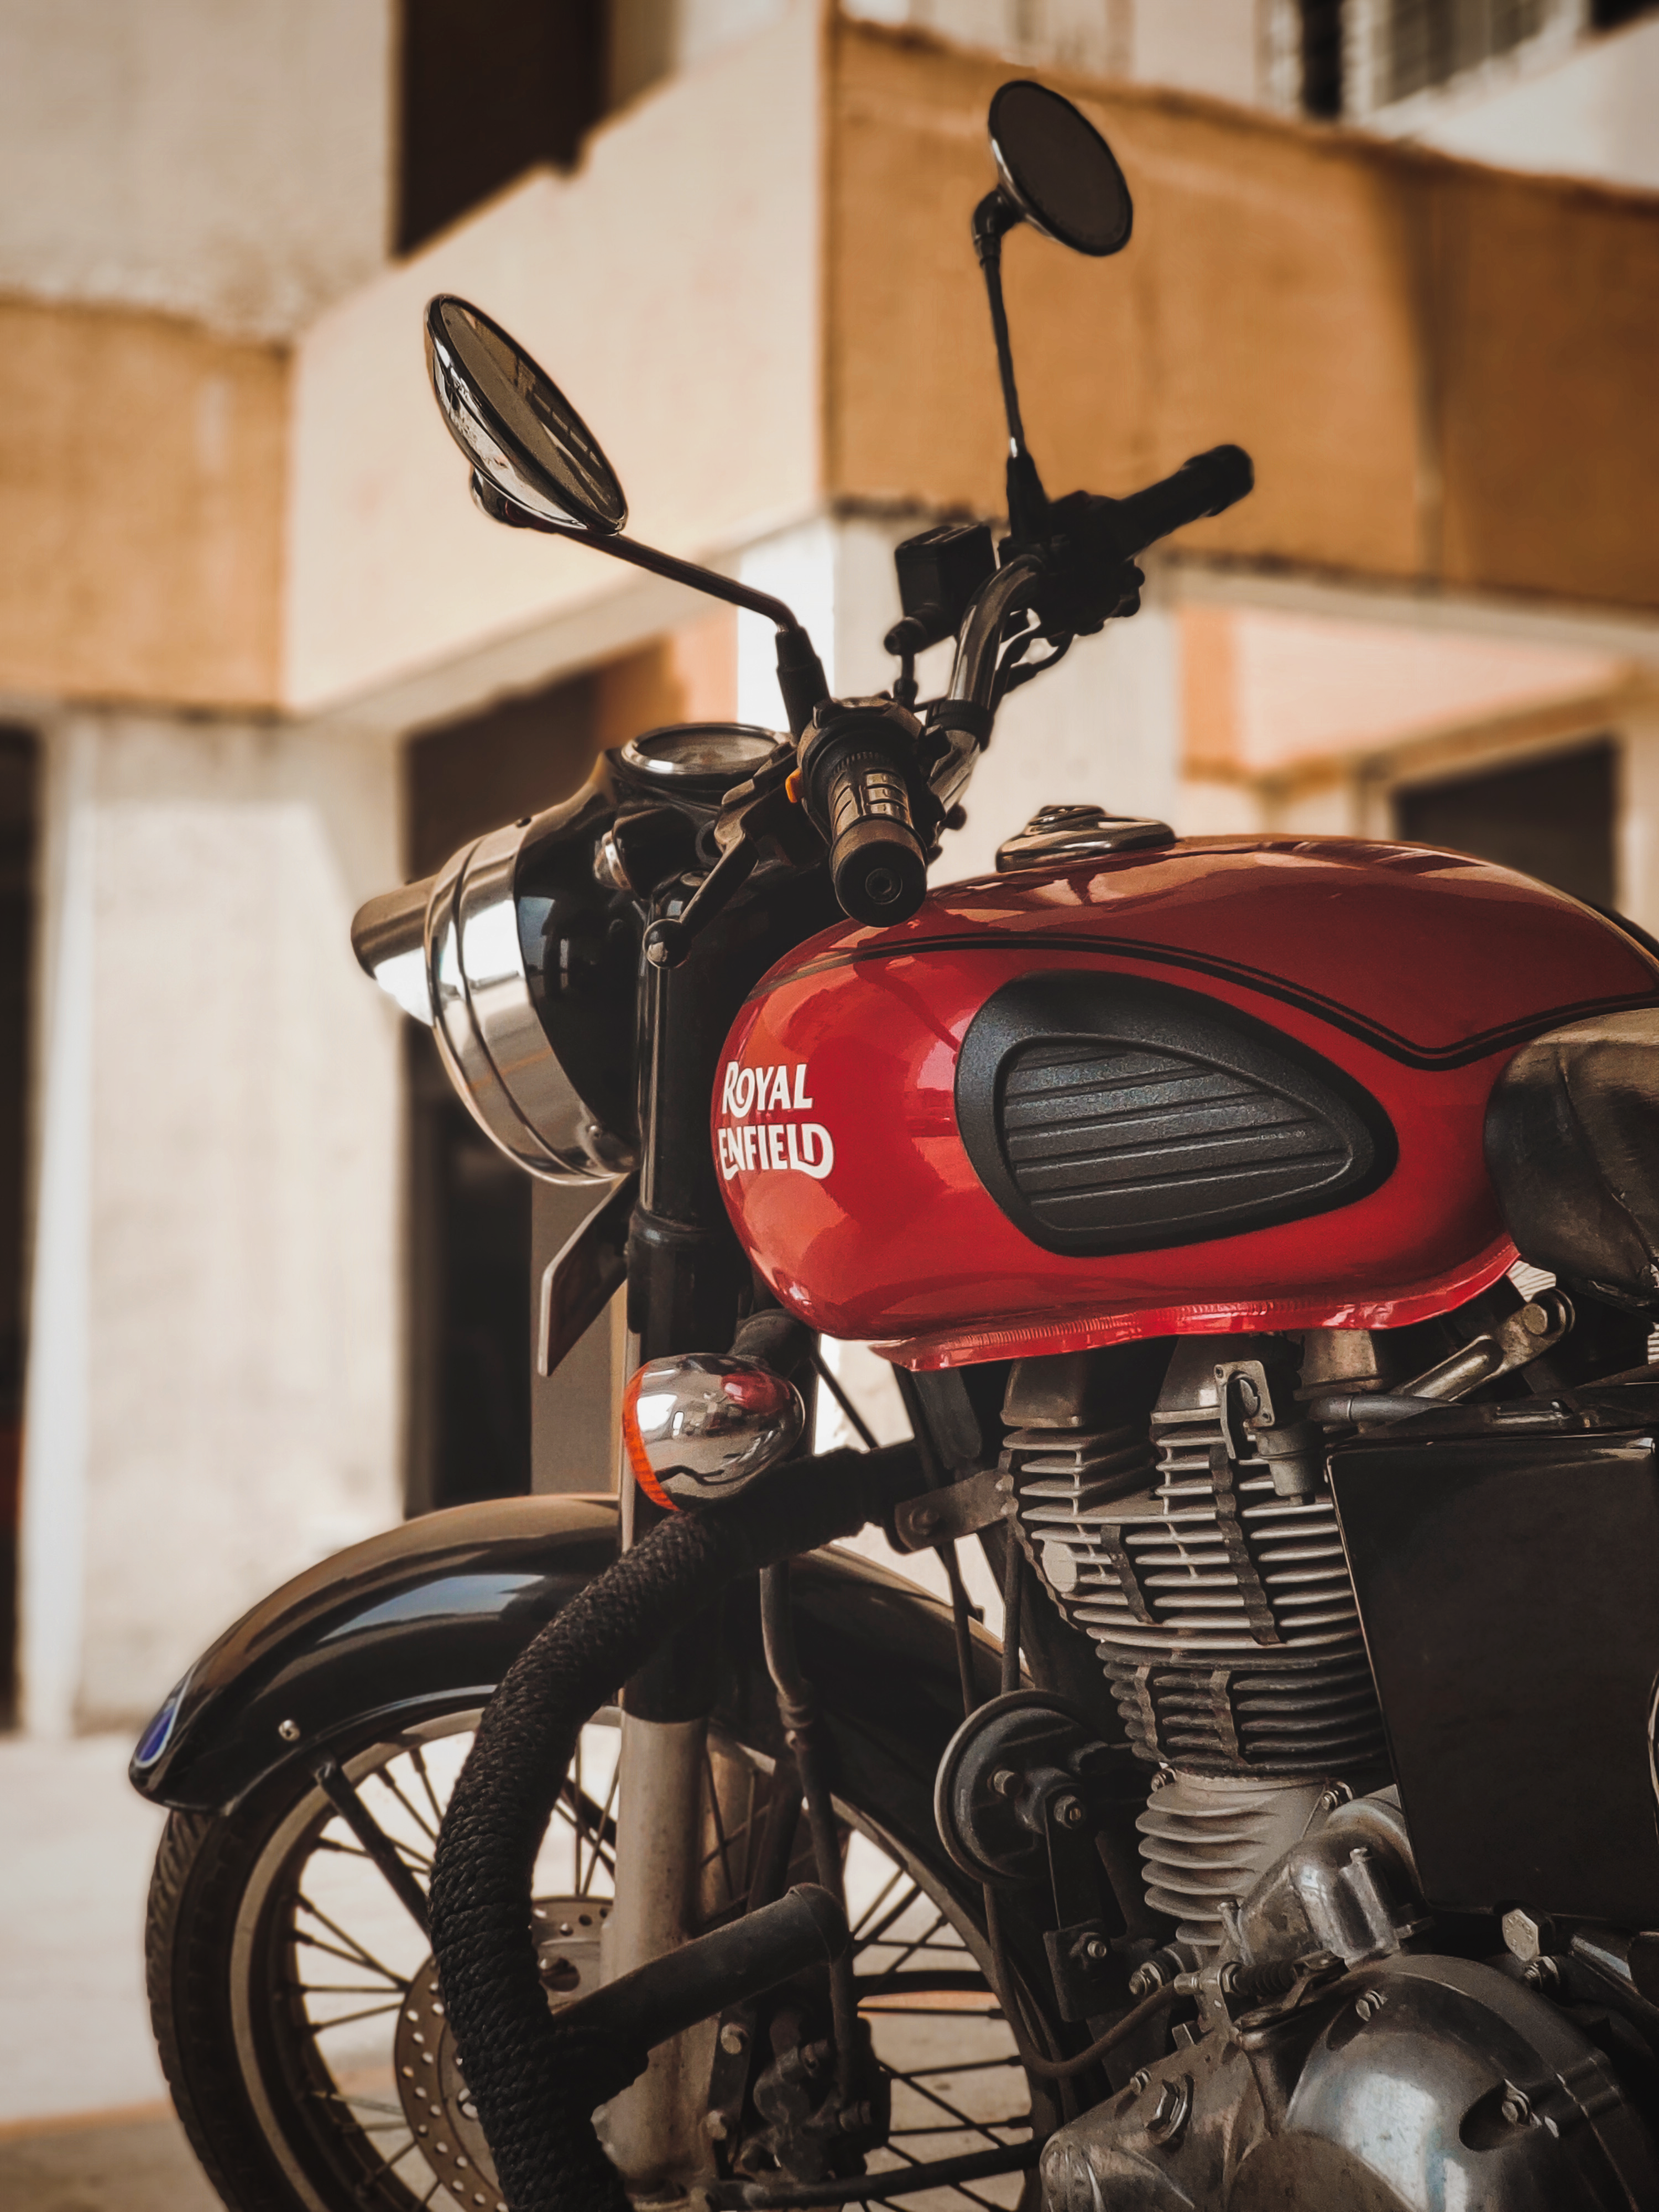 500 Royal Enfield Wallpapers Hd Download Free Images Stock Photos On Unsplash